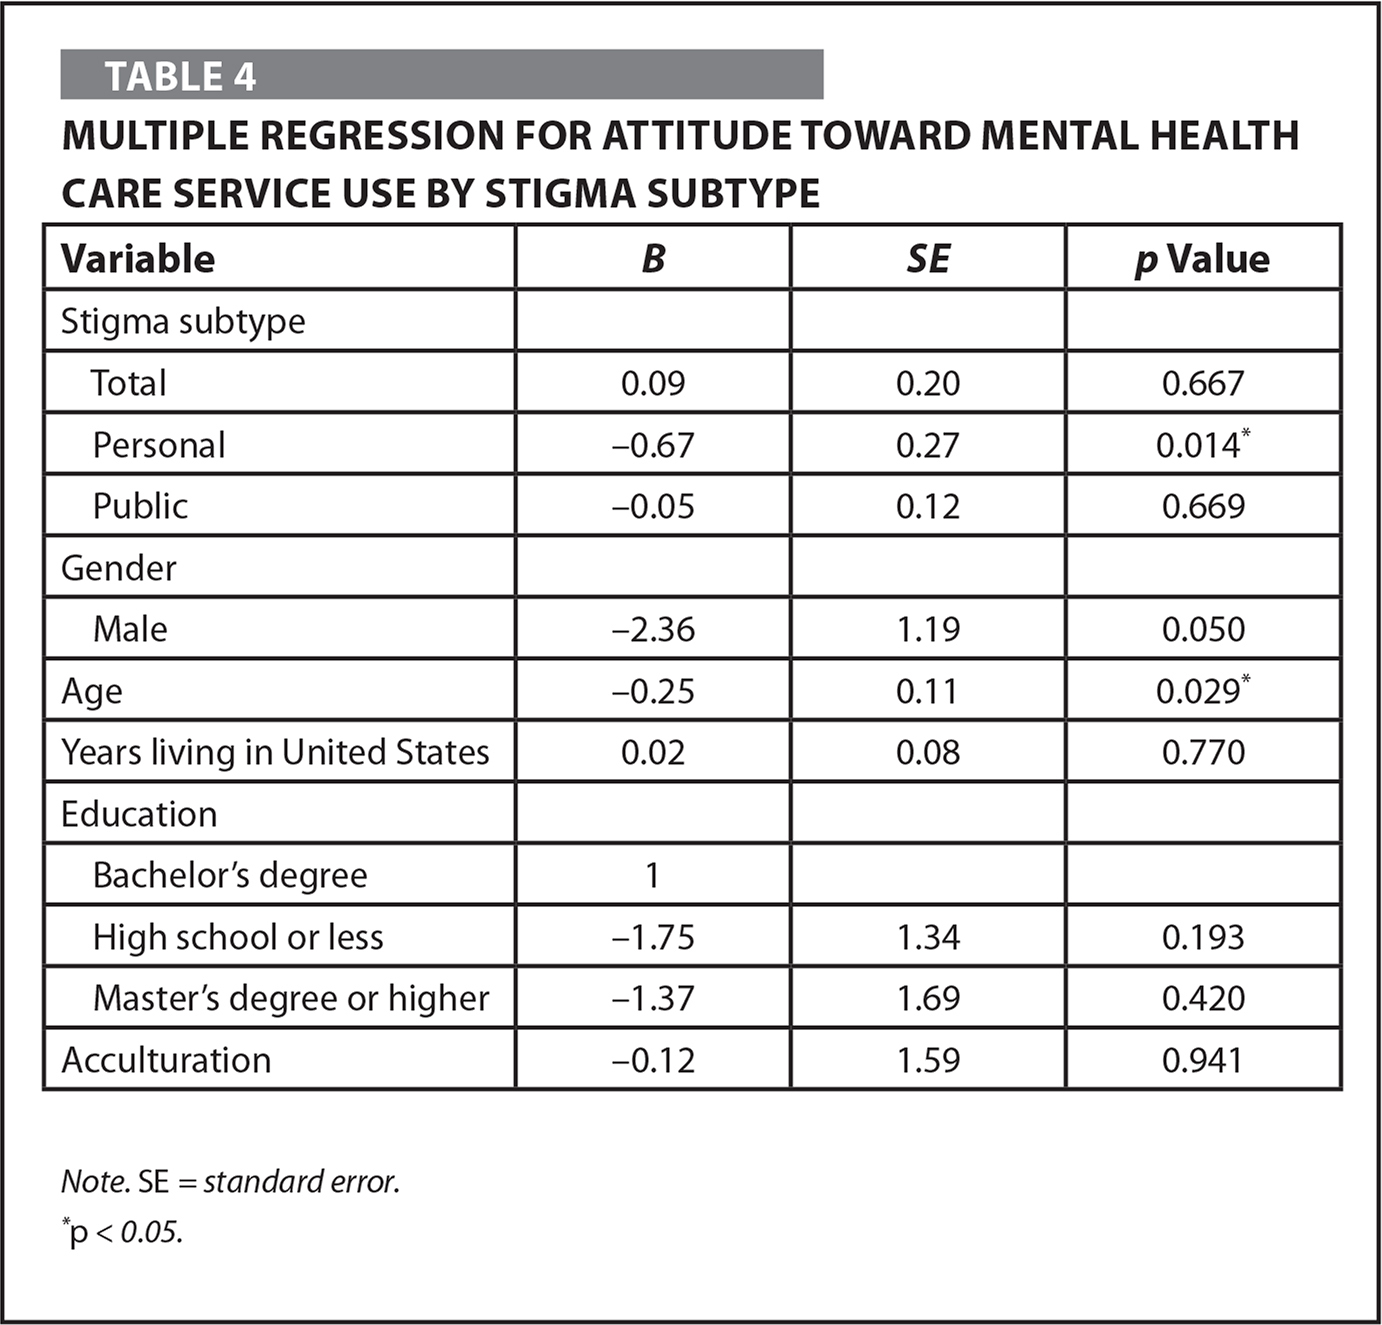 Multiple Regression for Attitude Toward Mental Health Care Service Use by Stigma Subtype